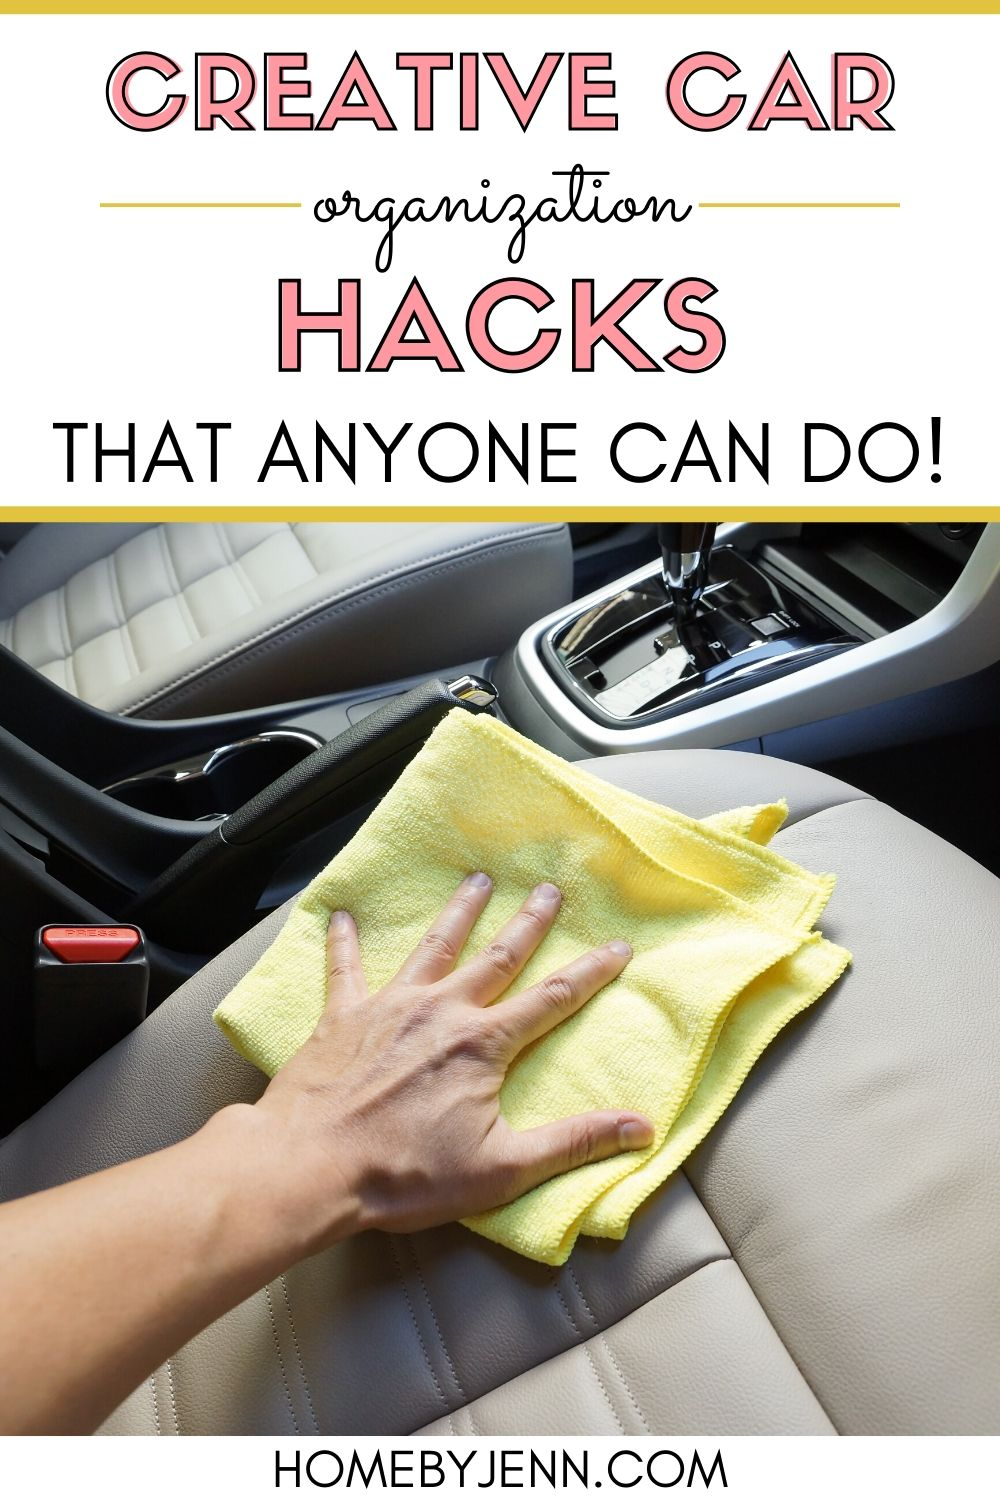 Owning a car means that you need to find ways to keep it clean and decluttered. These car organization hacks are so simple, anyone can do them! #cleaningtips #cleaninghacks #carcleaning #carorganizationhacks #organizinghacks via @homebyjenn